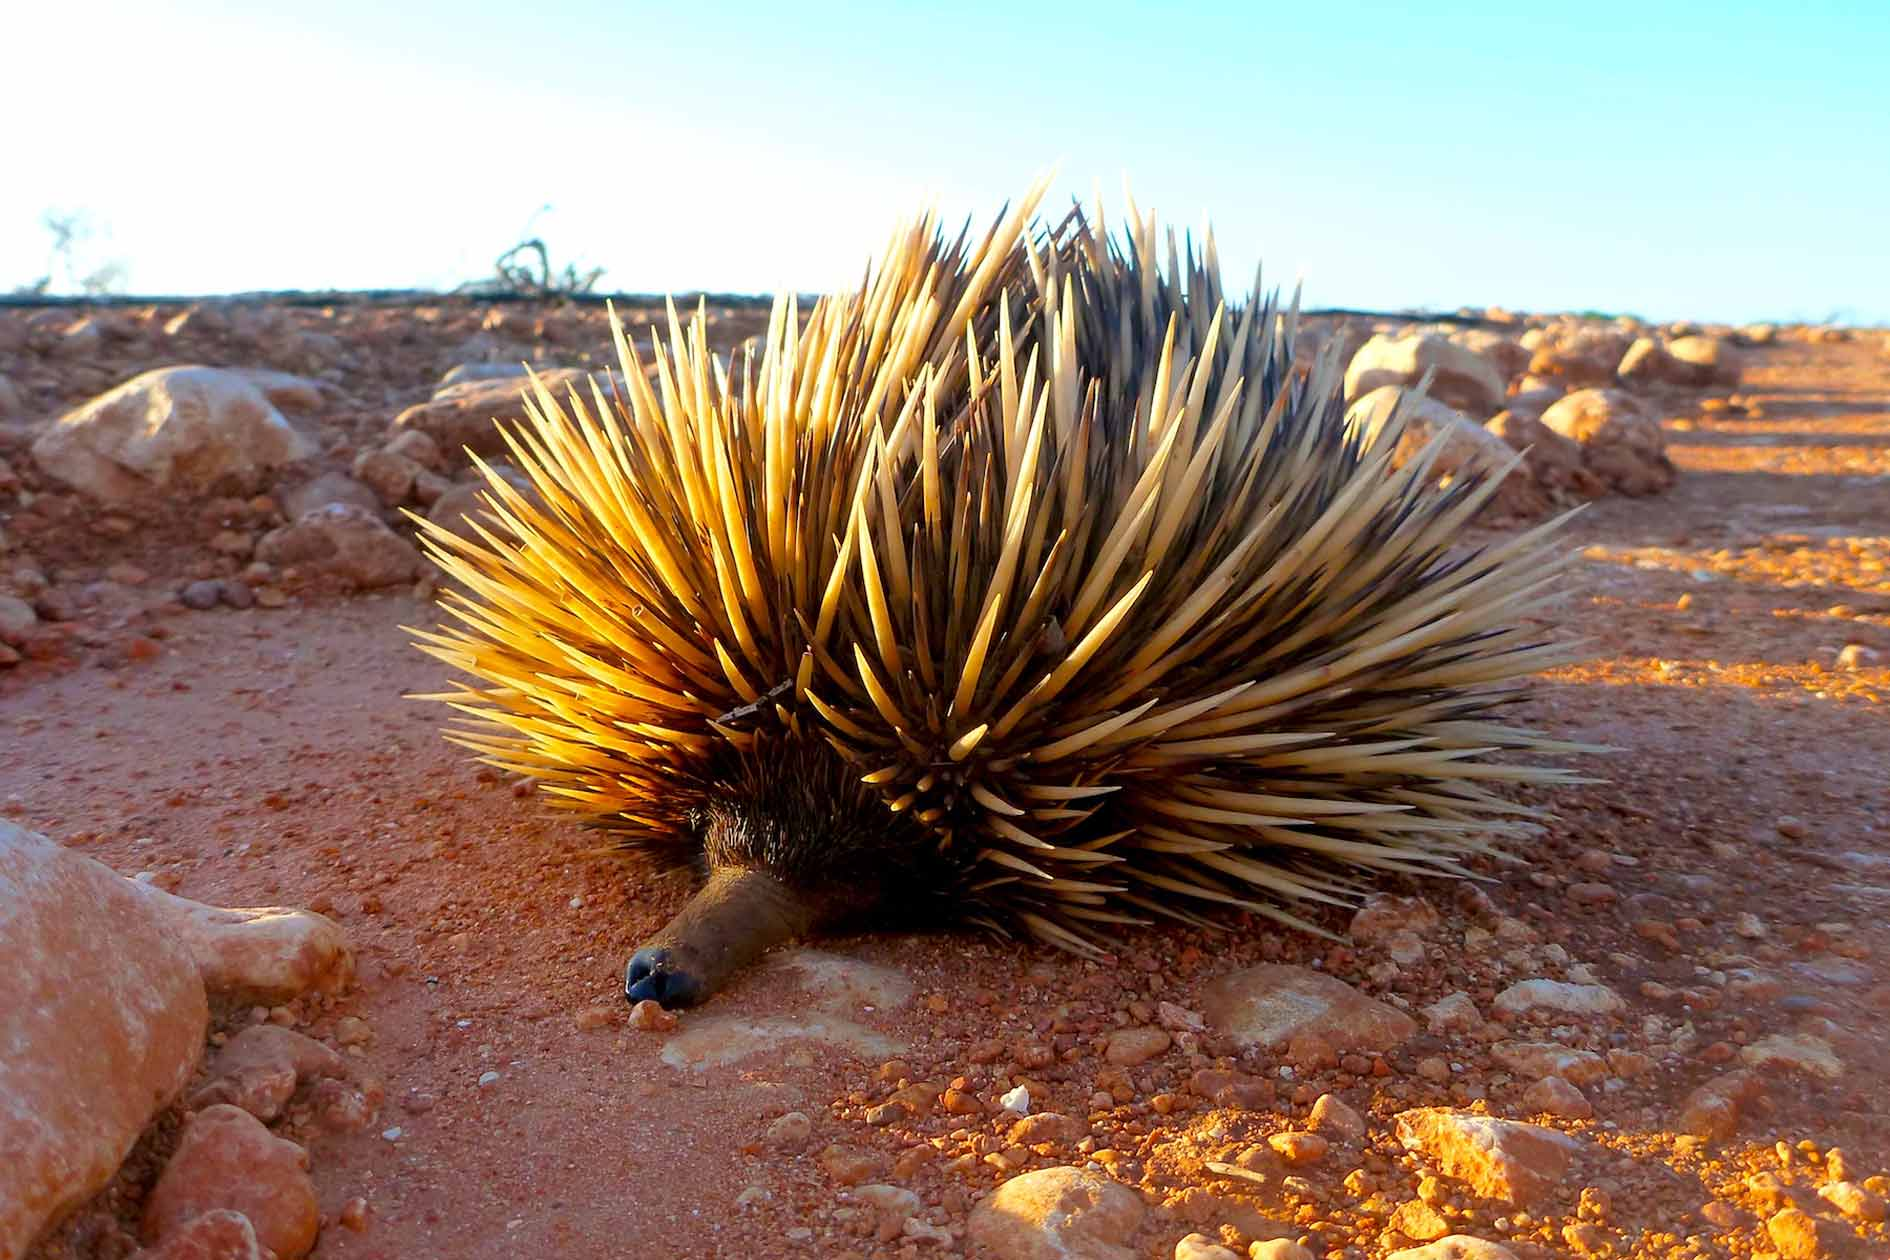 An echidna rests by the side of the road, these shy monotremes can be found year round on Ningaloo's Wildlife calendar